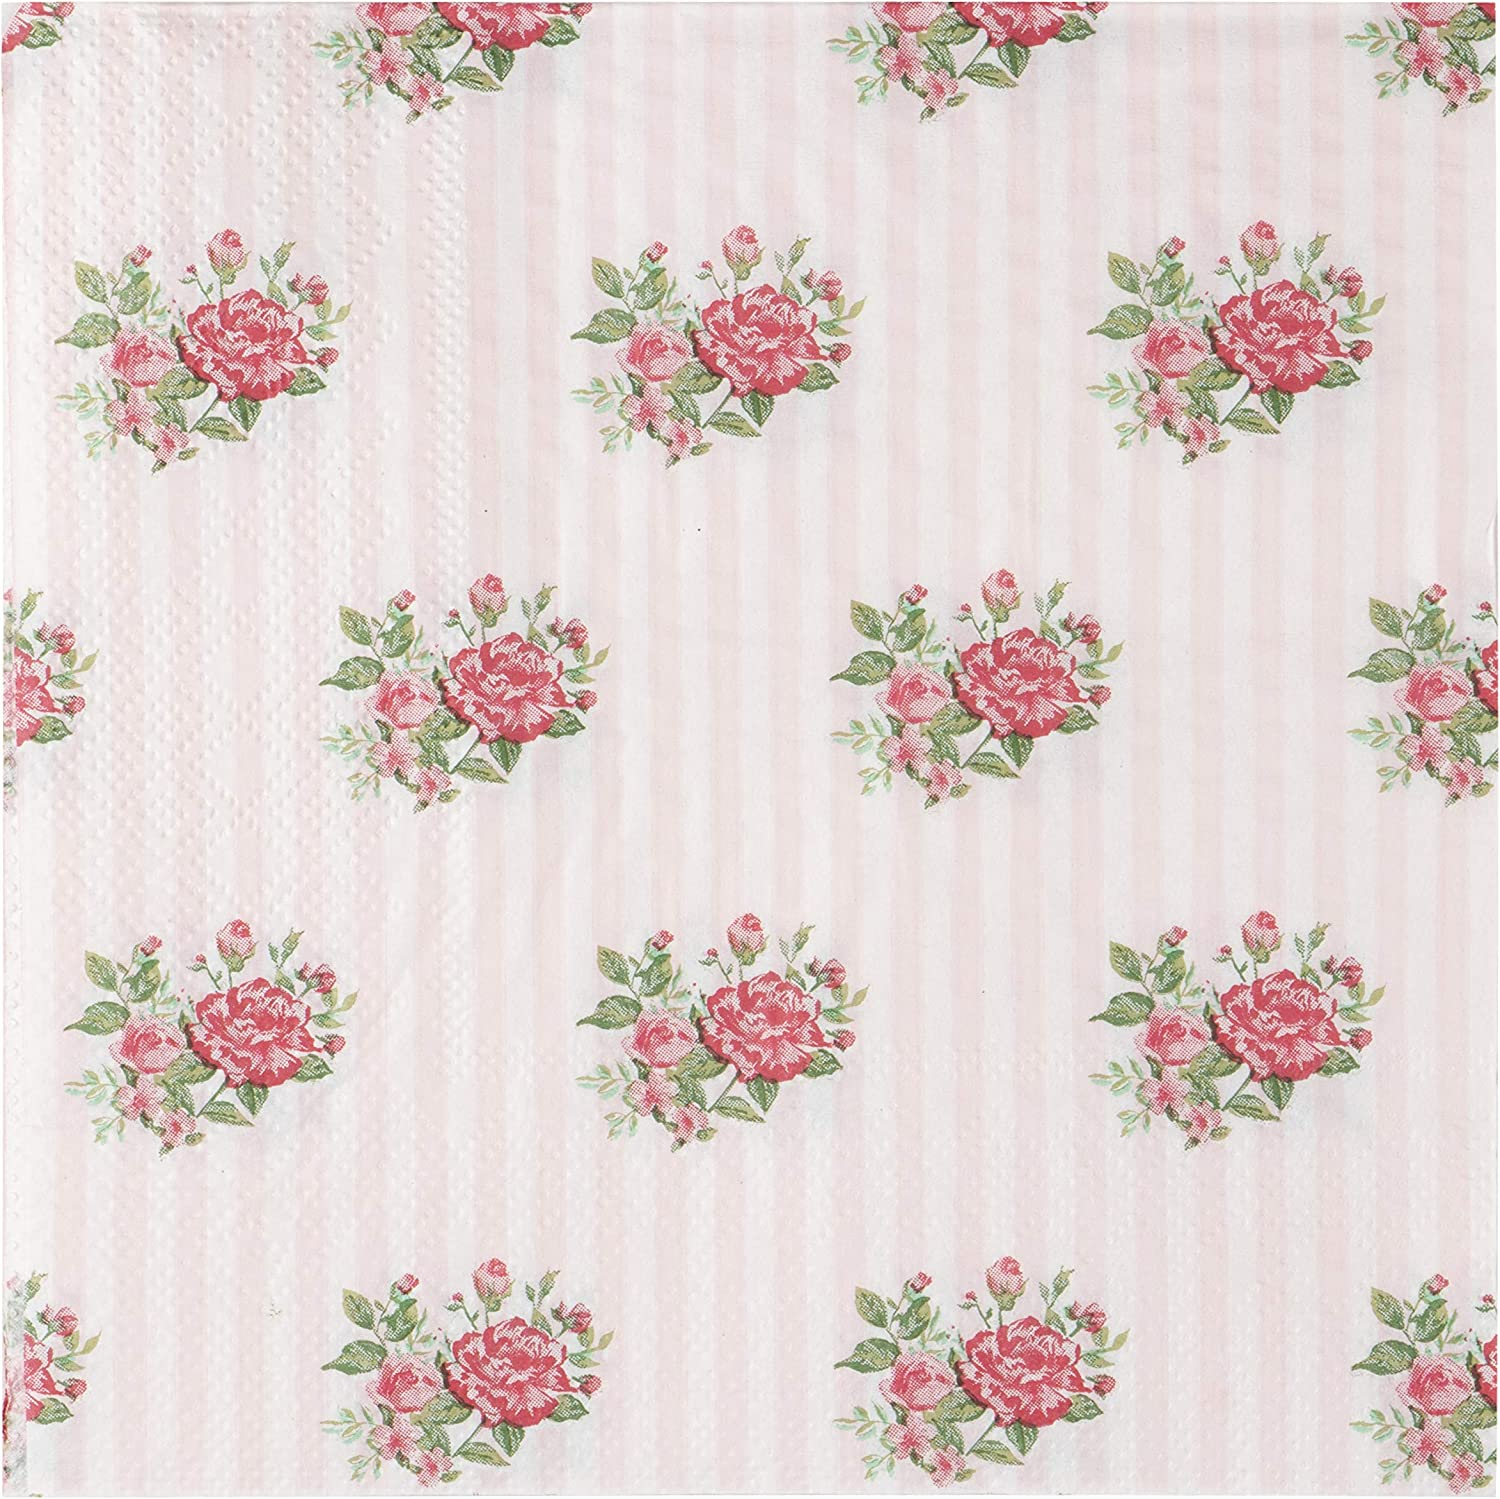 Floral Paper Napkins, Vintage Pink Roses Party Napkins (6.5 Inches, 100 Pack)